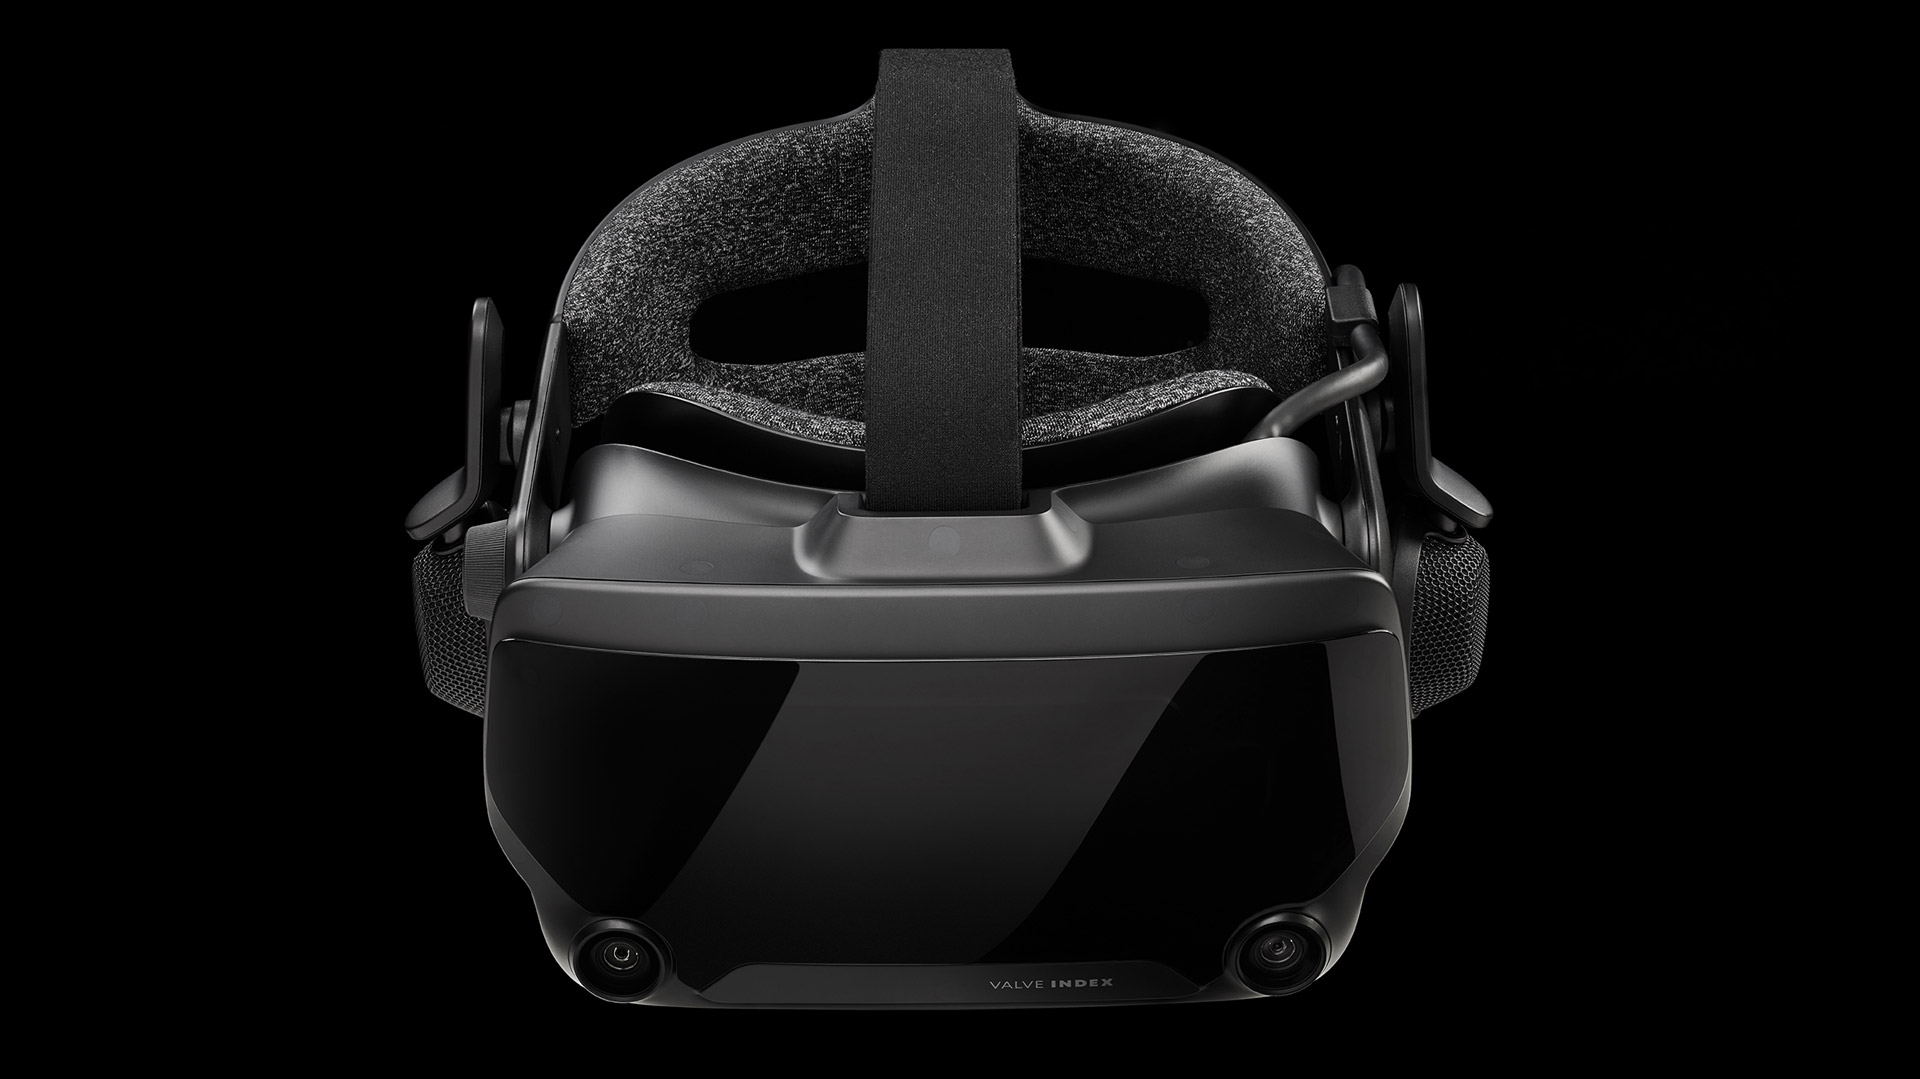 Valve Index 2: rumors, predictions and what we want from the VR headset